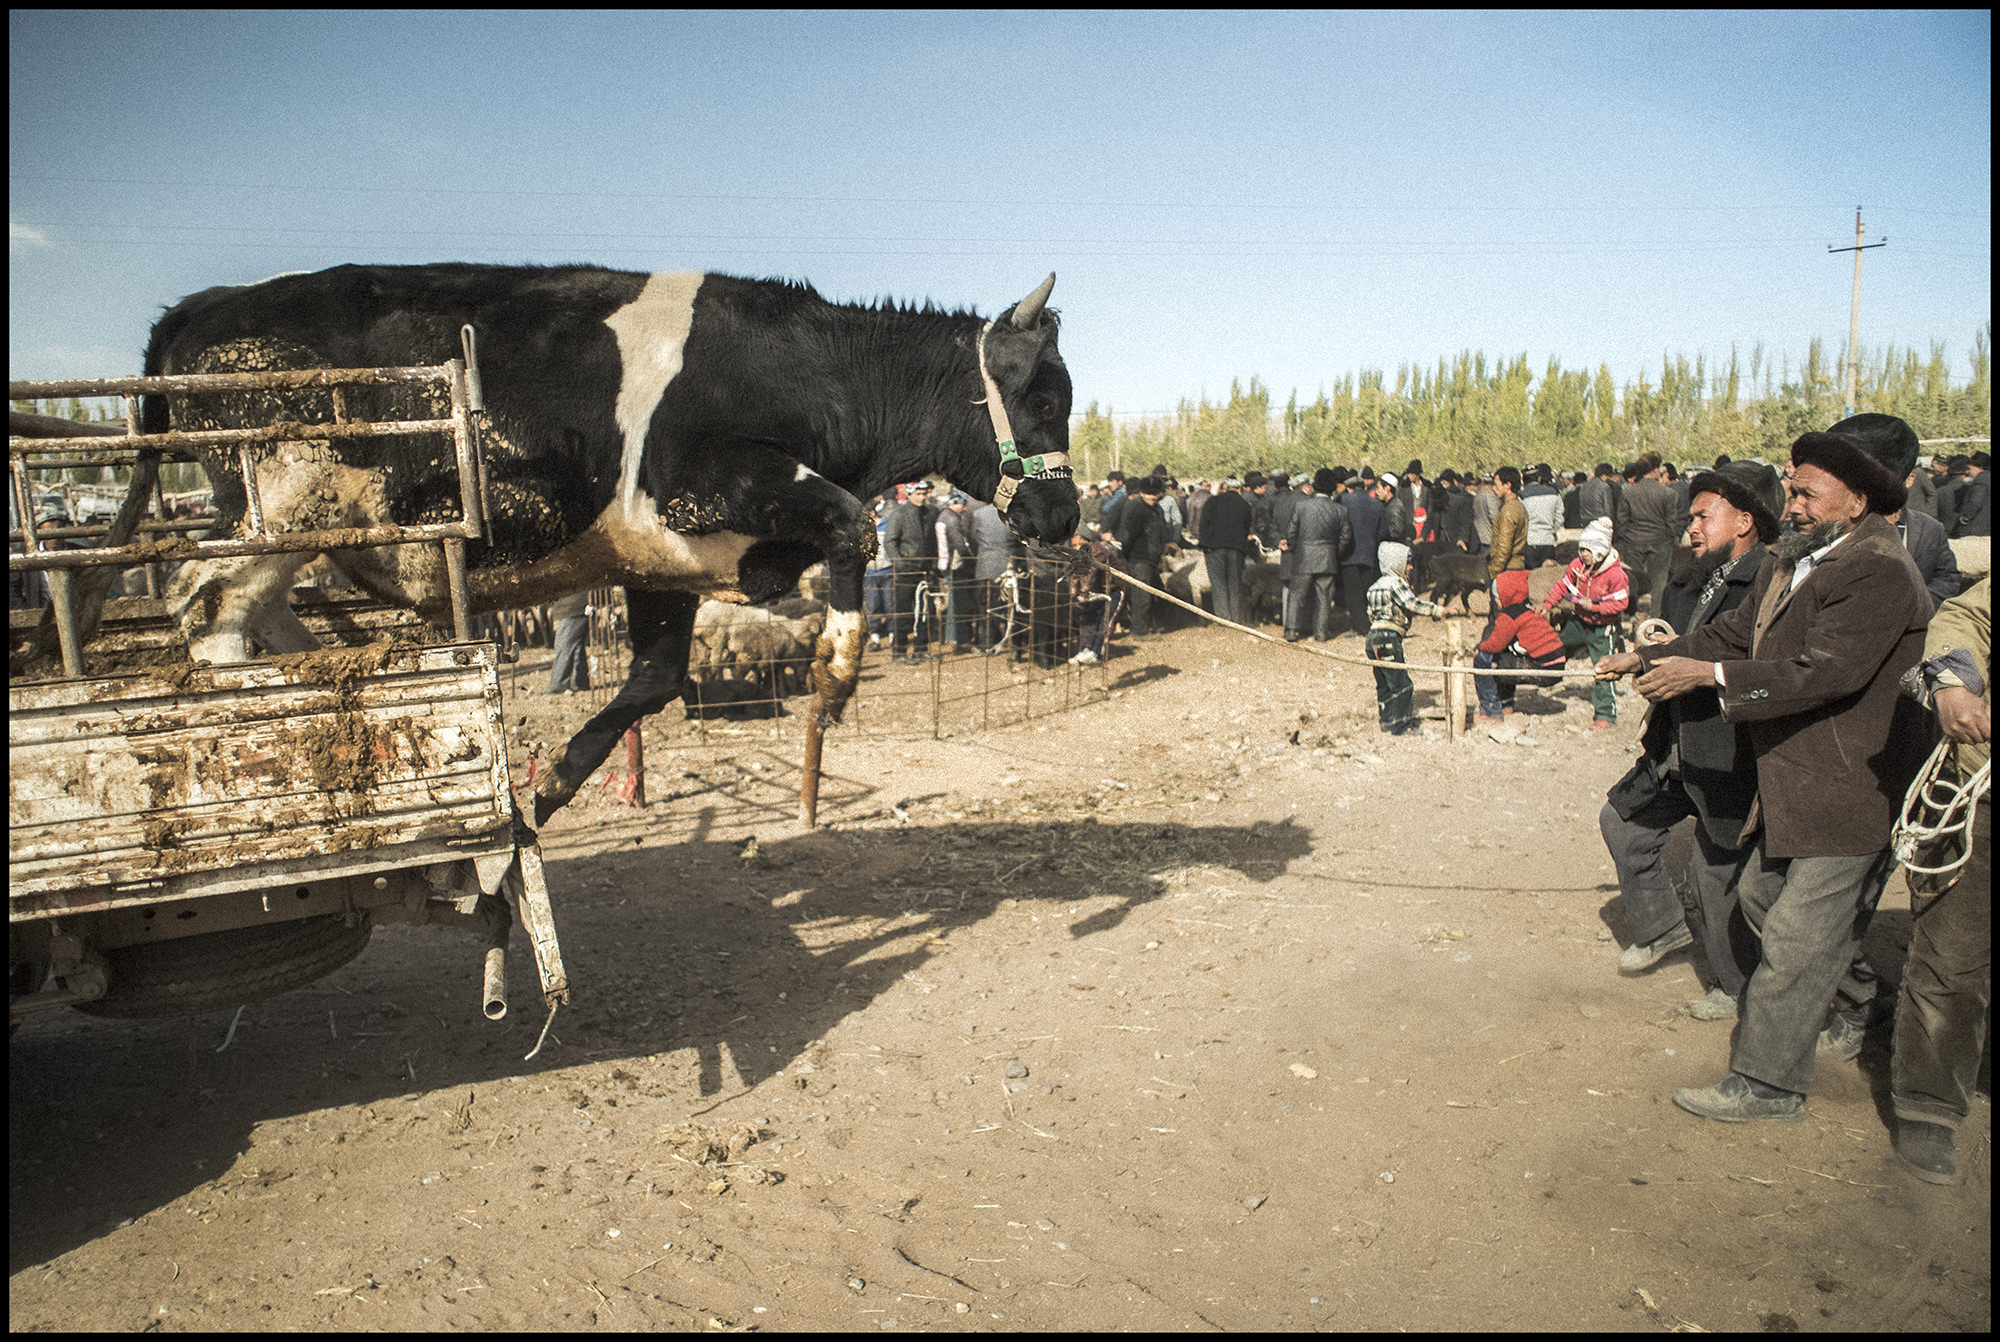 Digital Patrik Wallner Kashgar Cow Jump LOWQ 2000P